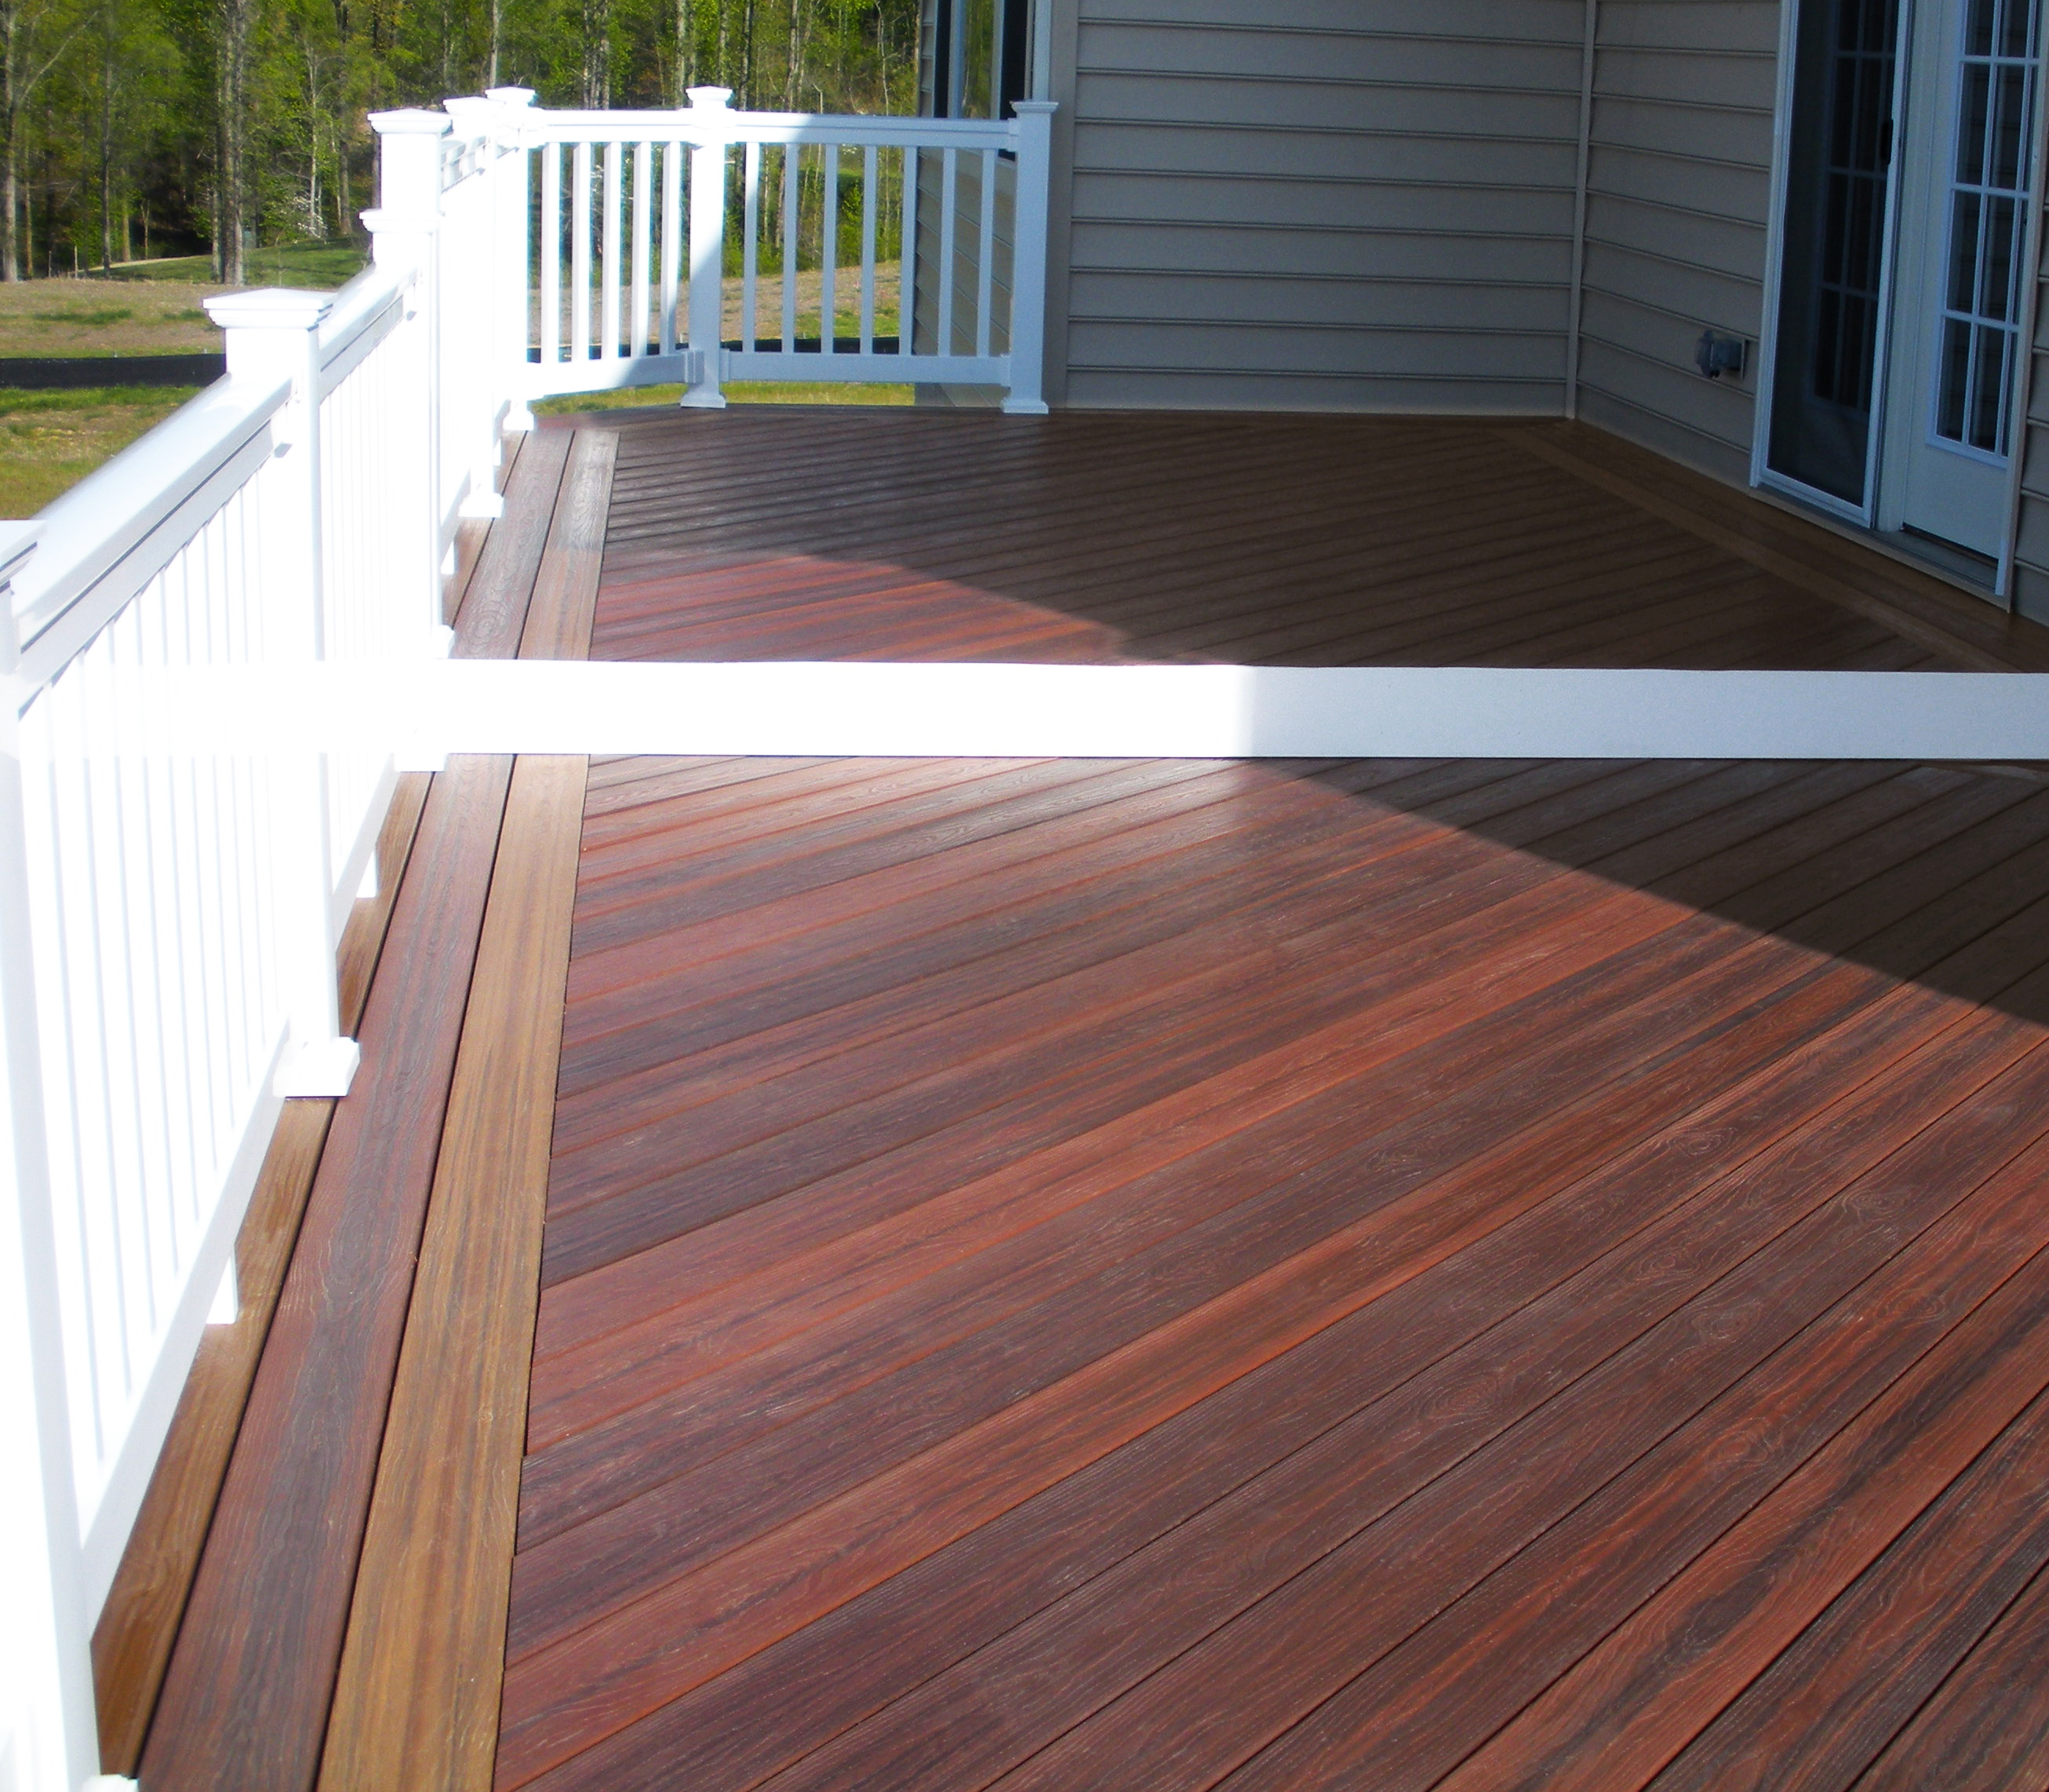 Best composite decking best composite decking resistant for Evergrain decking vs trex